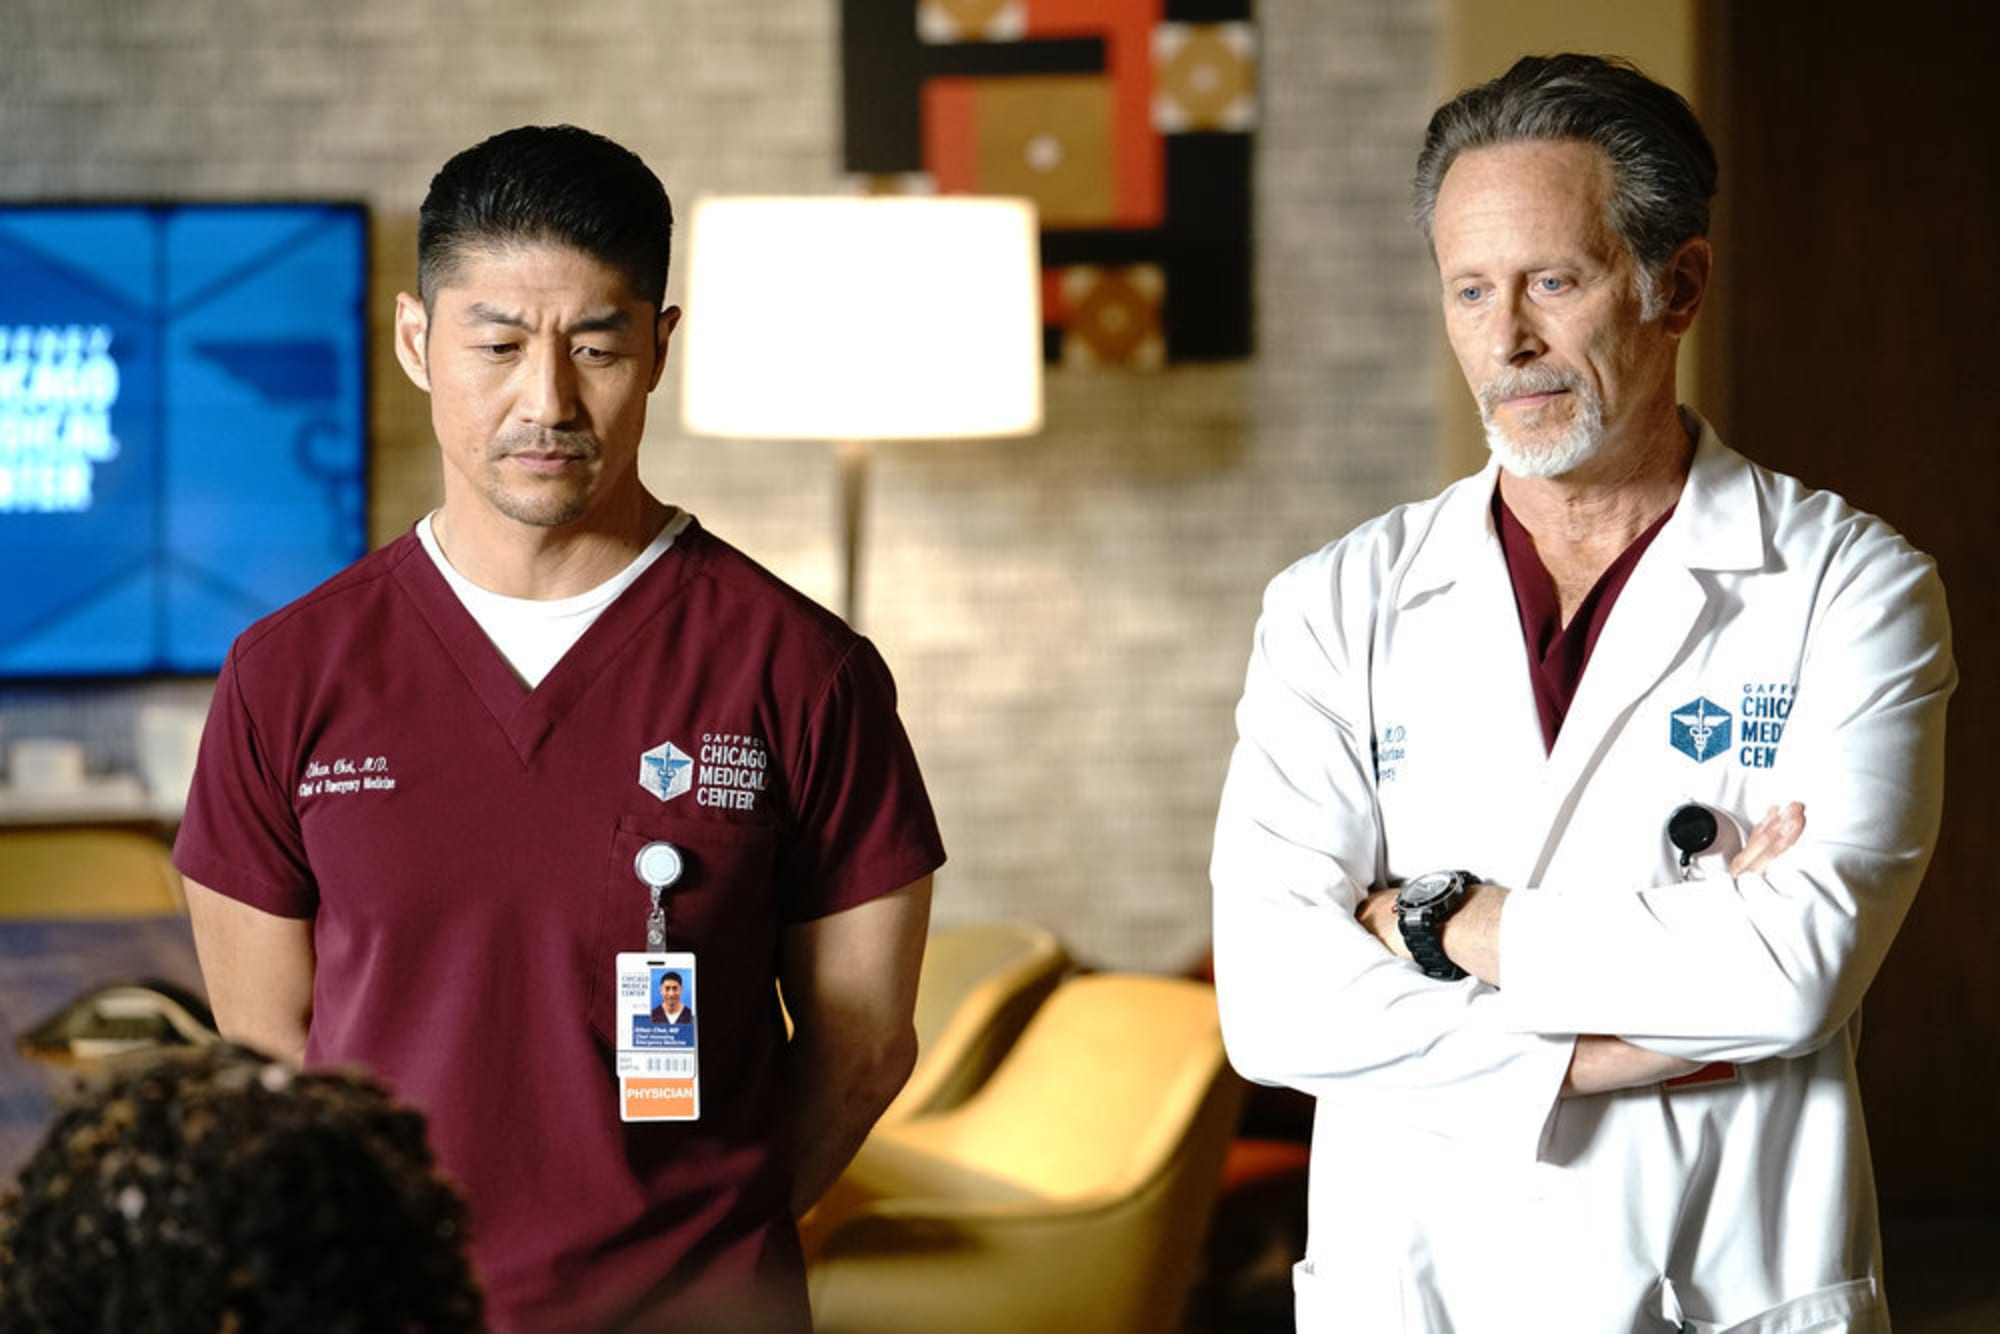 YAY! Chicago Med is Coming to Netflix US this Month!